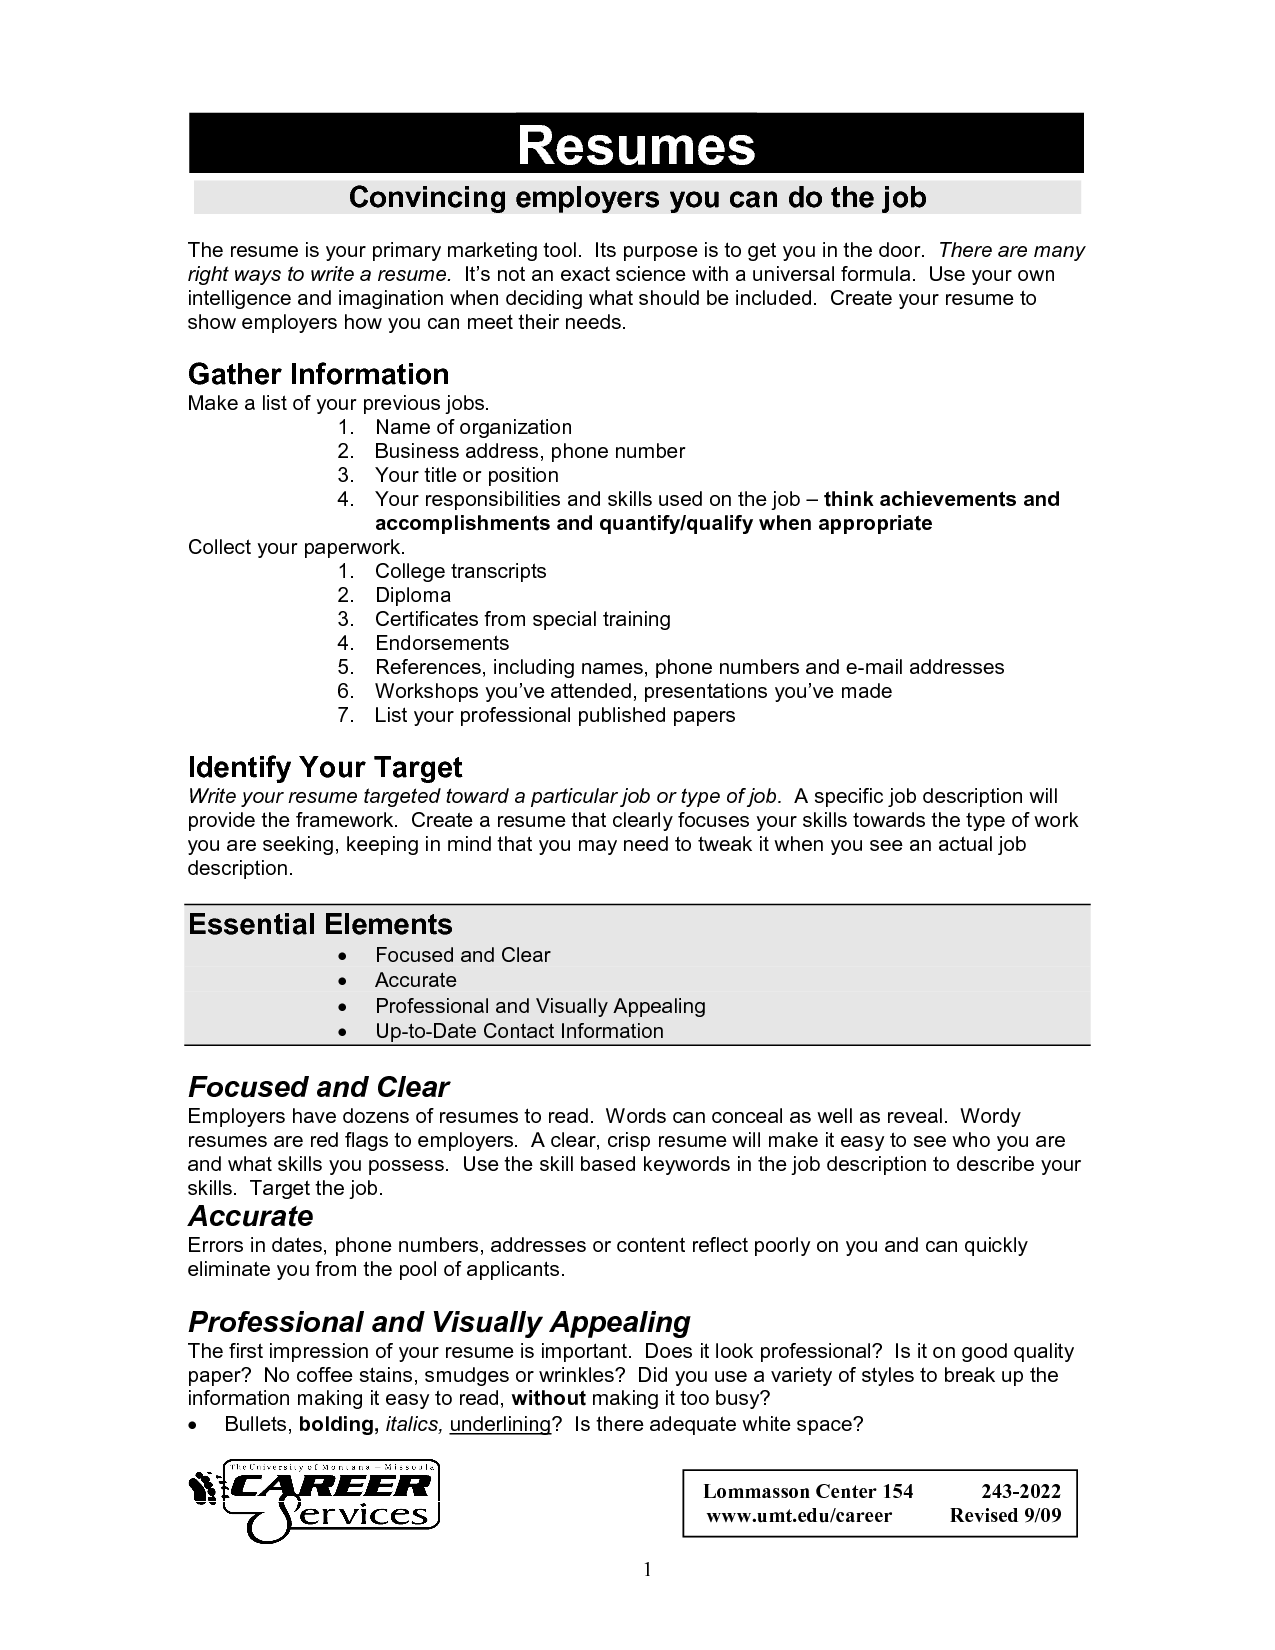 resumes - Best Job Resume Format